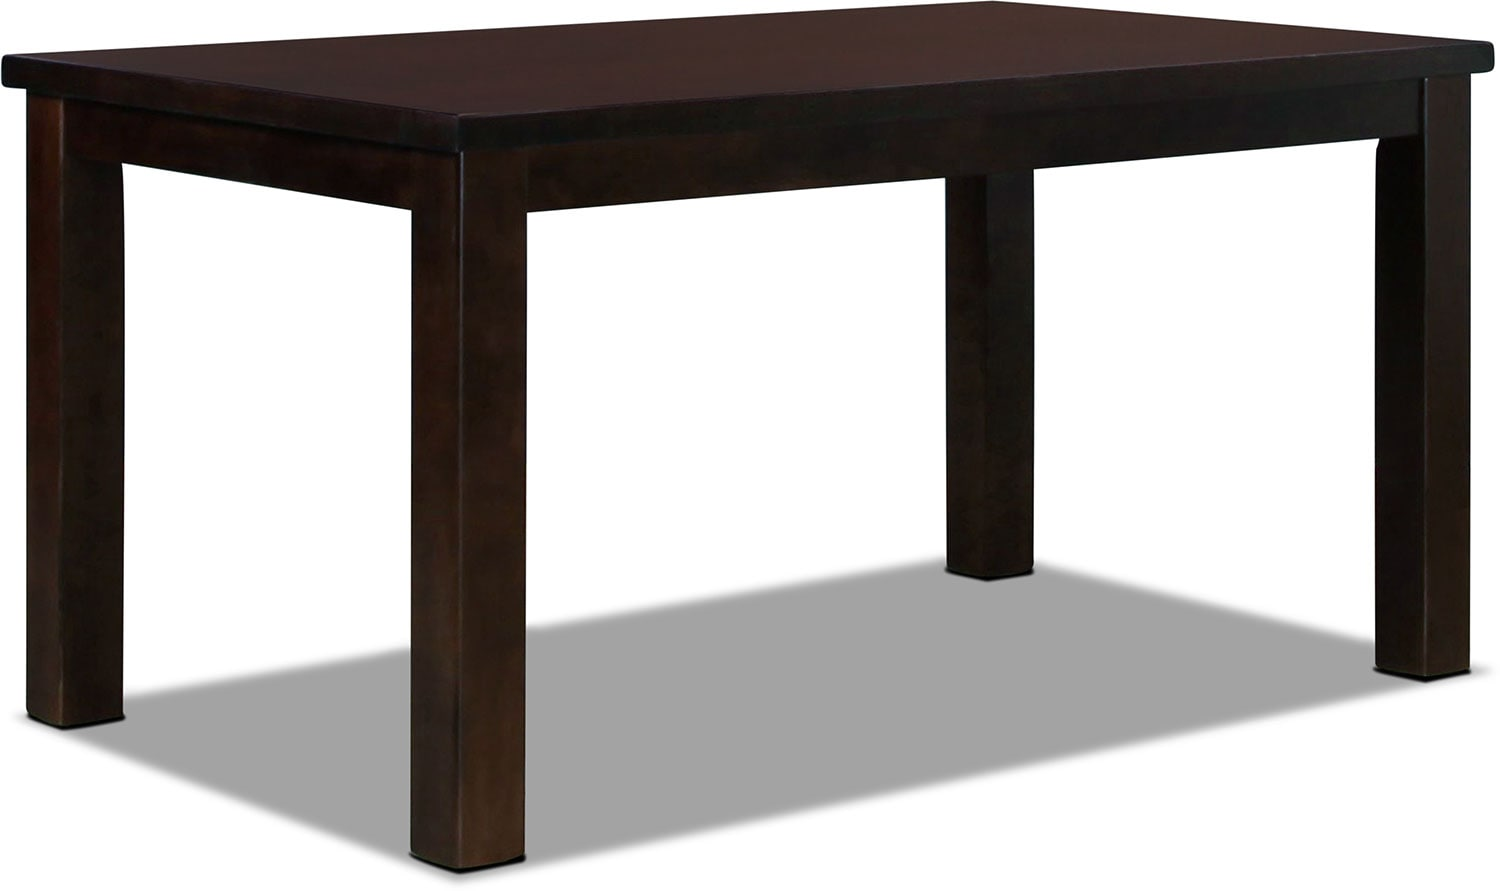 Cabot Cove Dining Table Levin Furniture